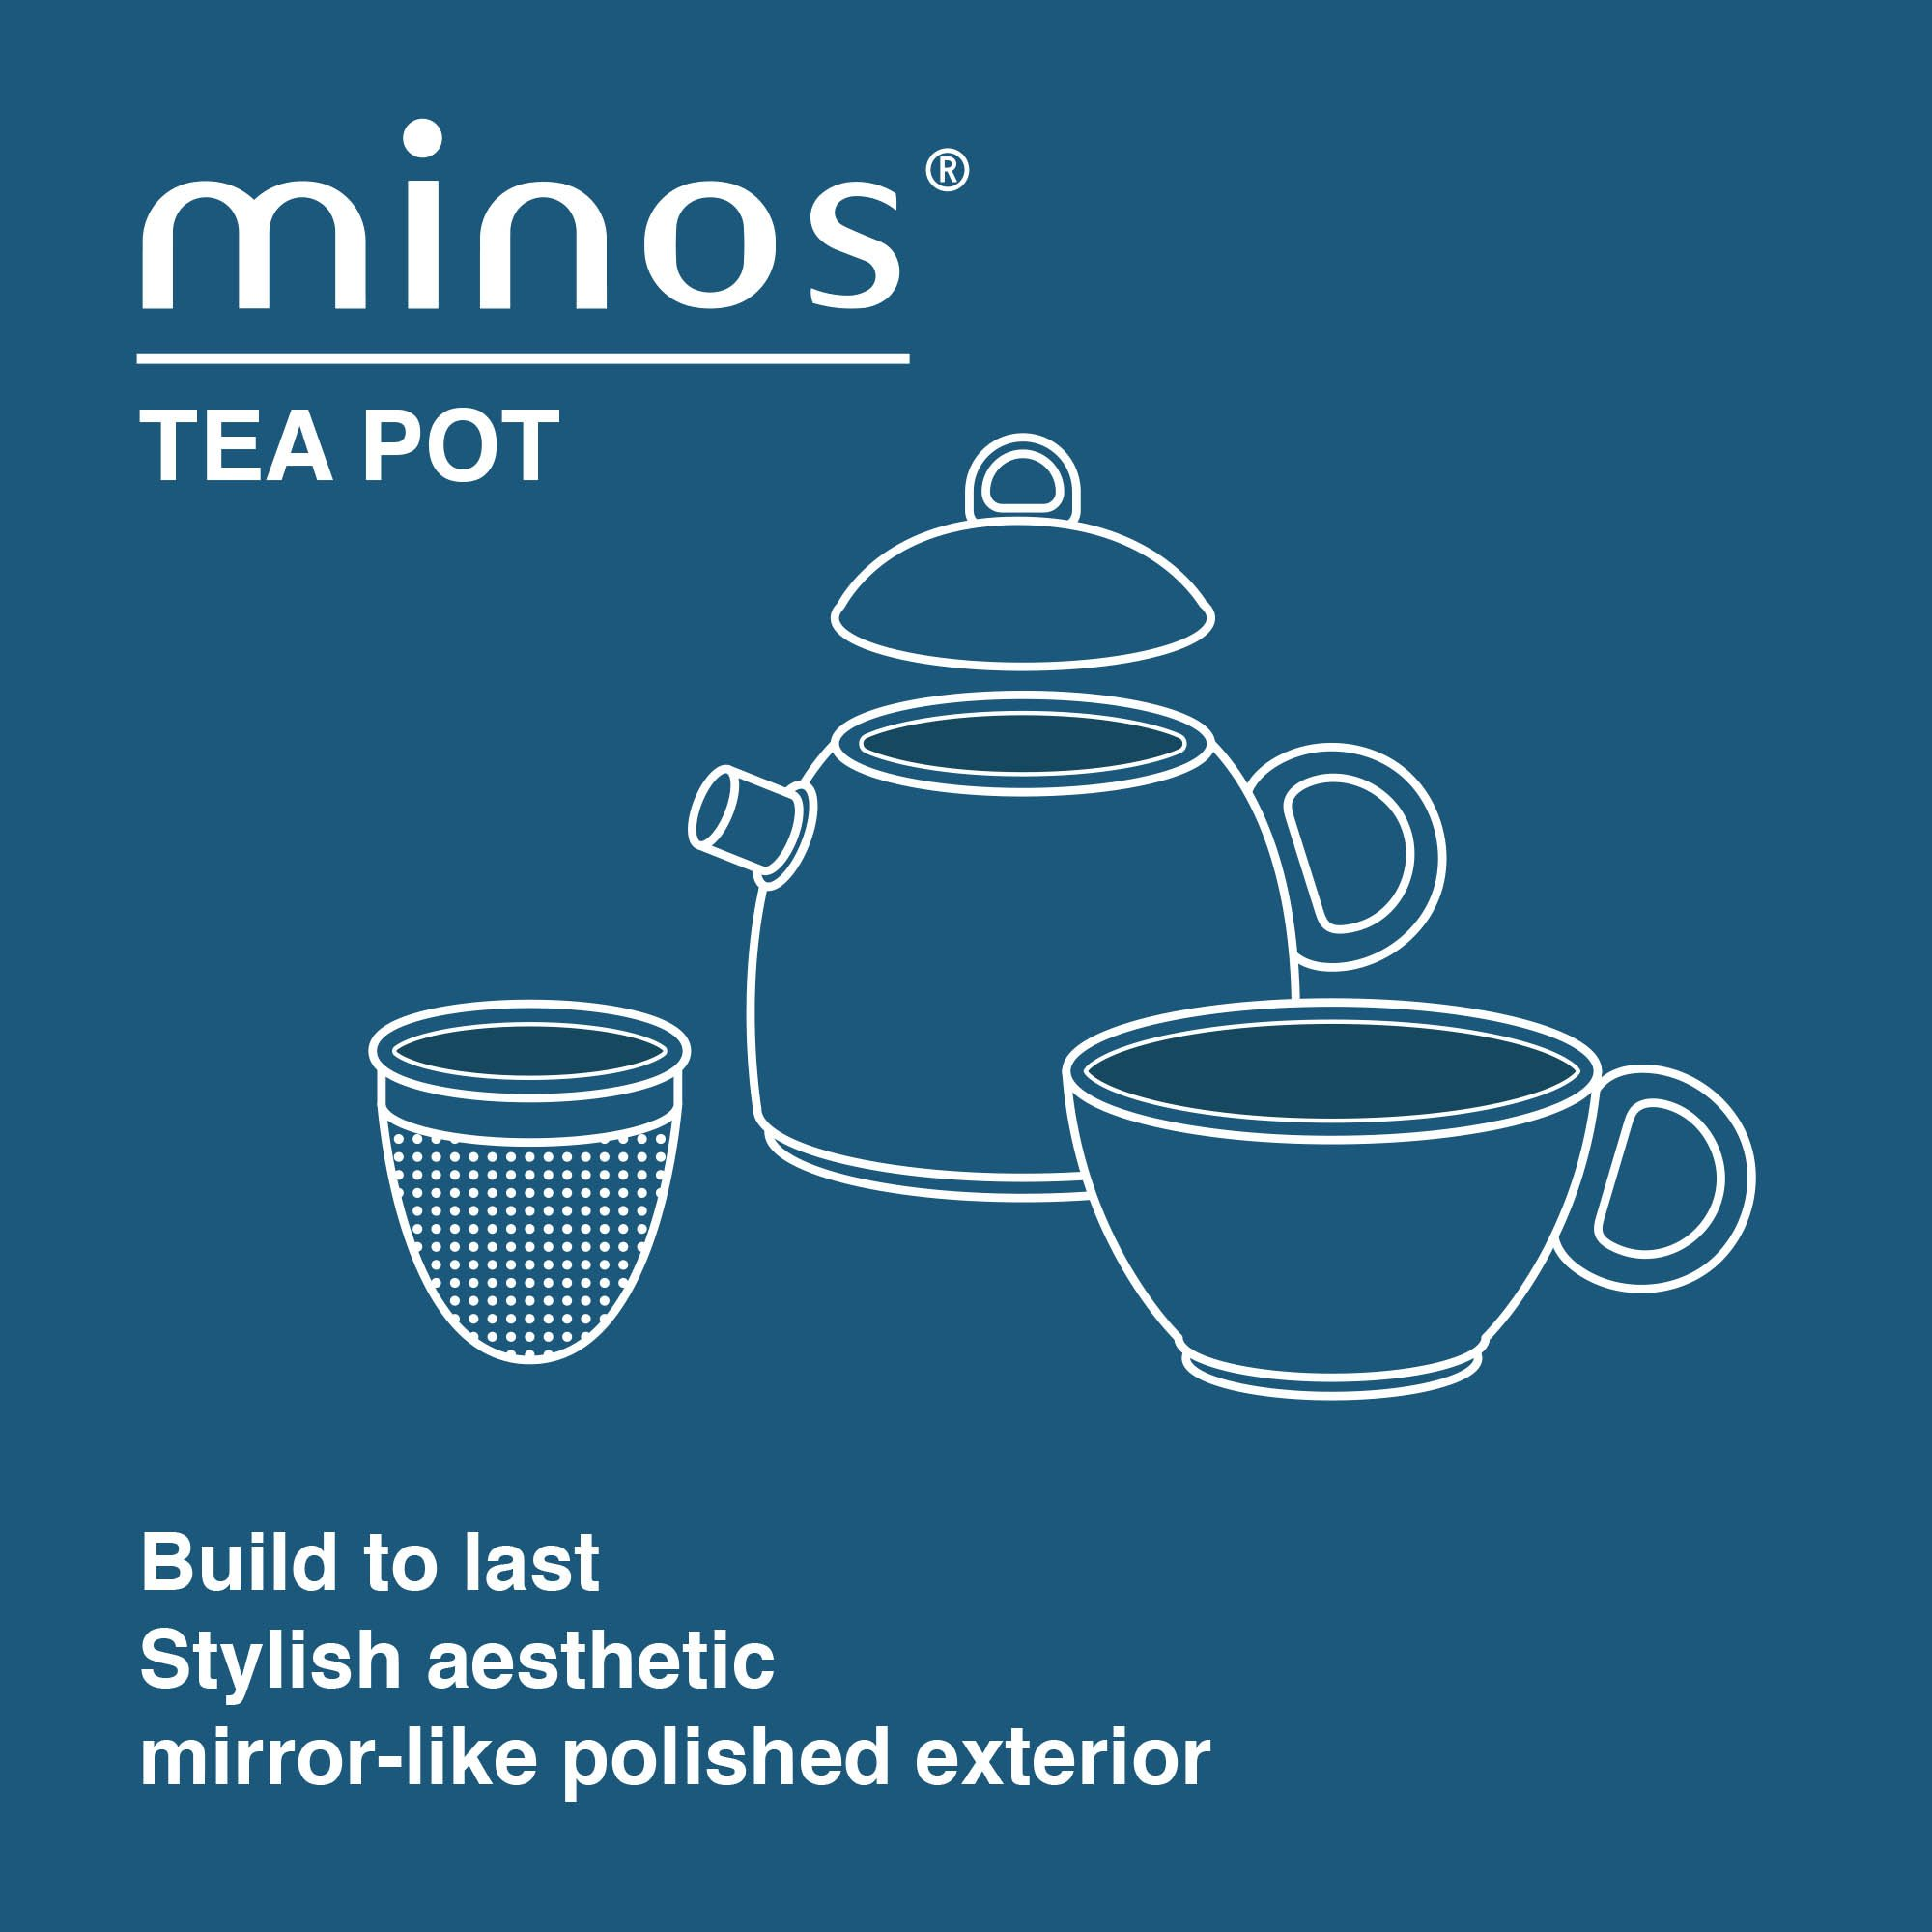 Minos Stunning Stainless Steel Teapot And Cup For One Set With Silicon Handle - 8.5 OZ Liquid Capacity - Hand-polished, Scratch, Wear and Tear Resistant Best for Serving Tea and Coffee by Minos (Image #4)